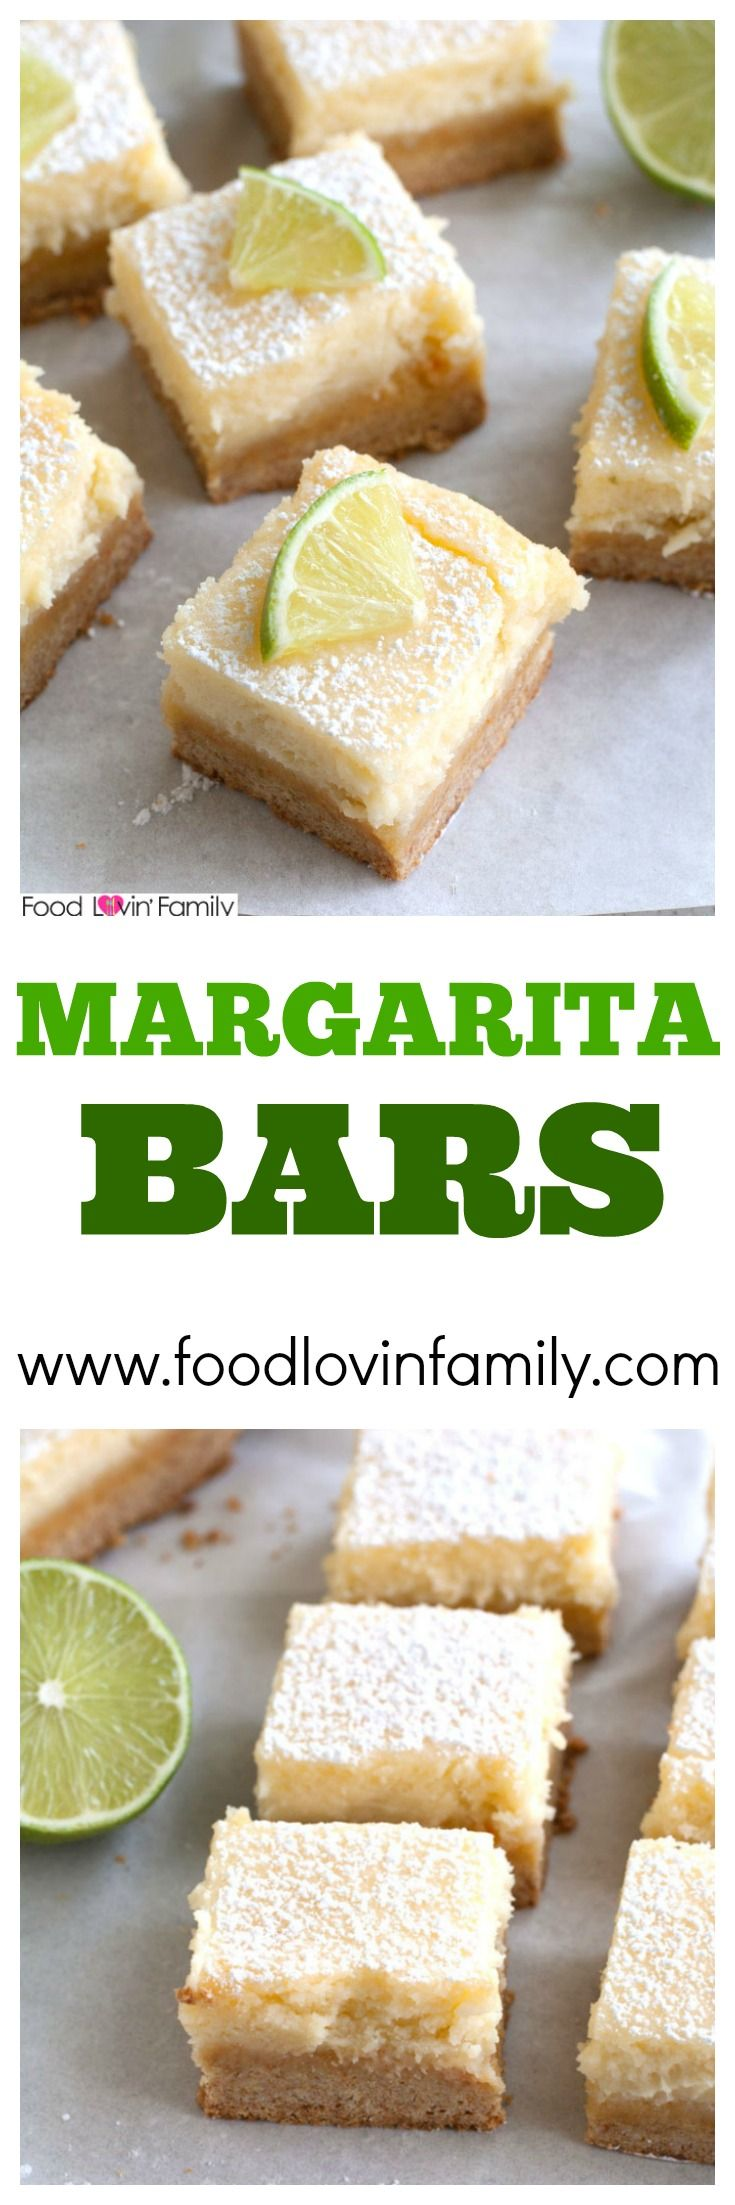 Margarita Bars are a delicious take on ooey gooey butter cake bars. Deliciously creamy with a hint of refreshing lime. Great for summer party or summer dessert.